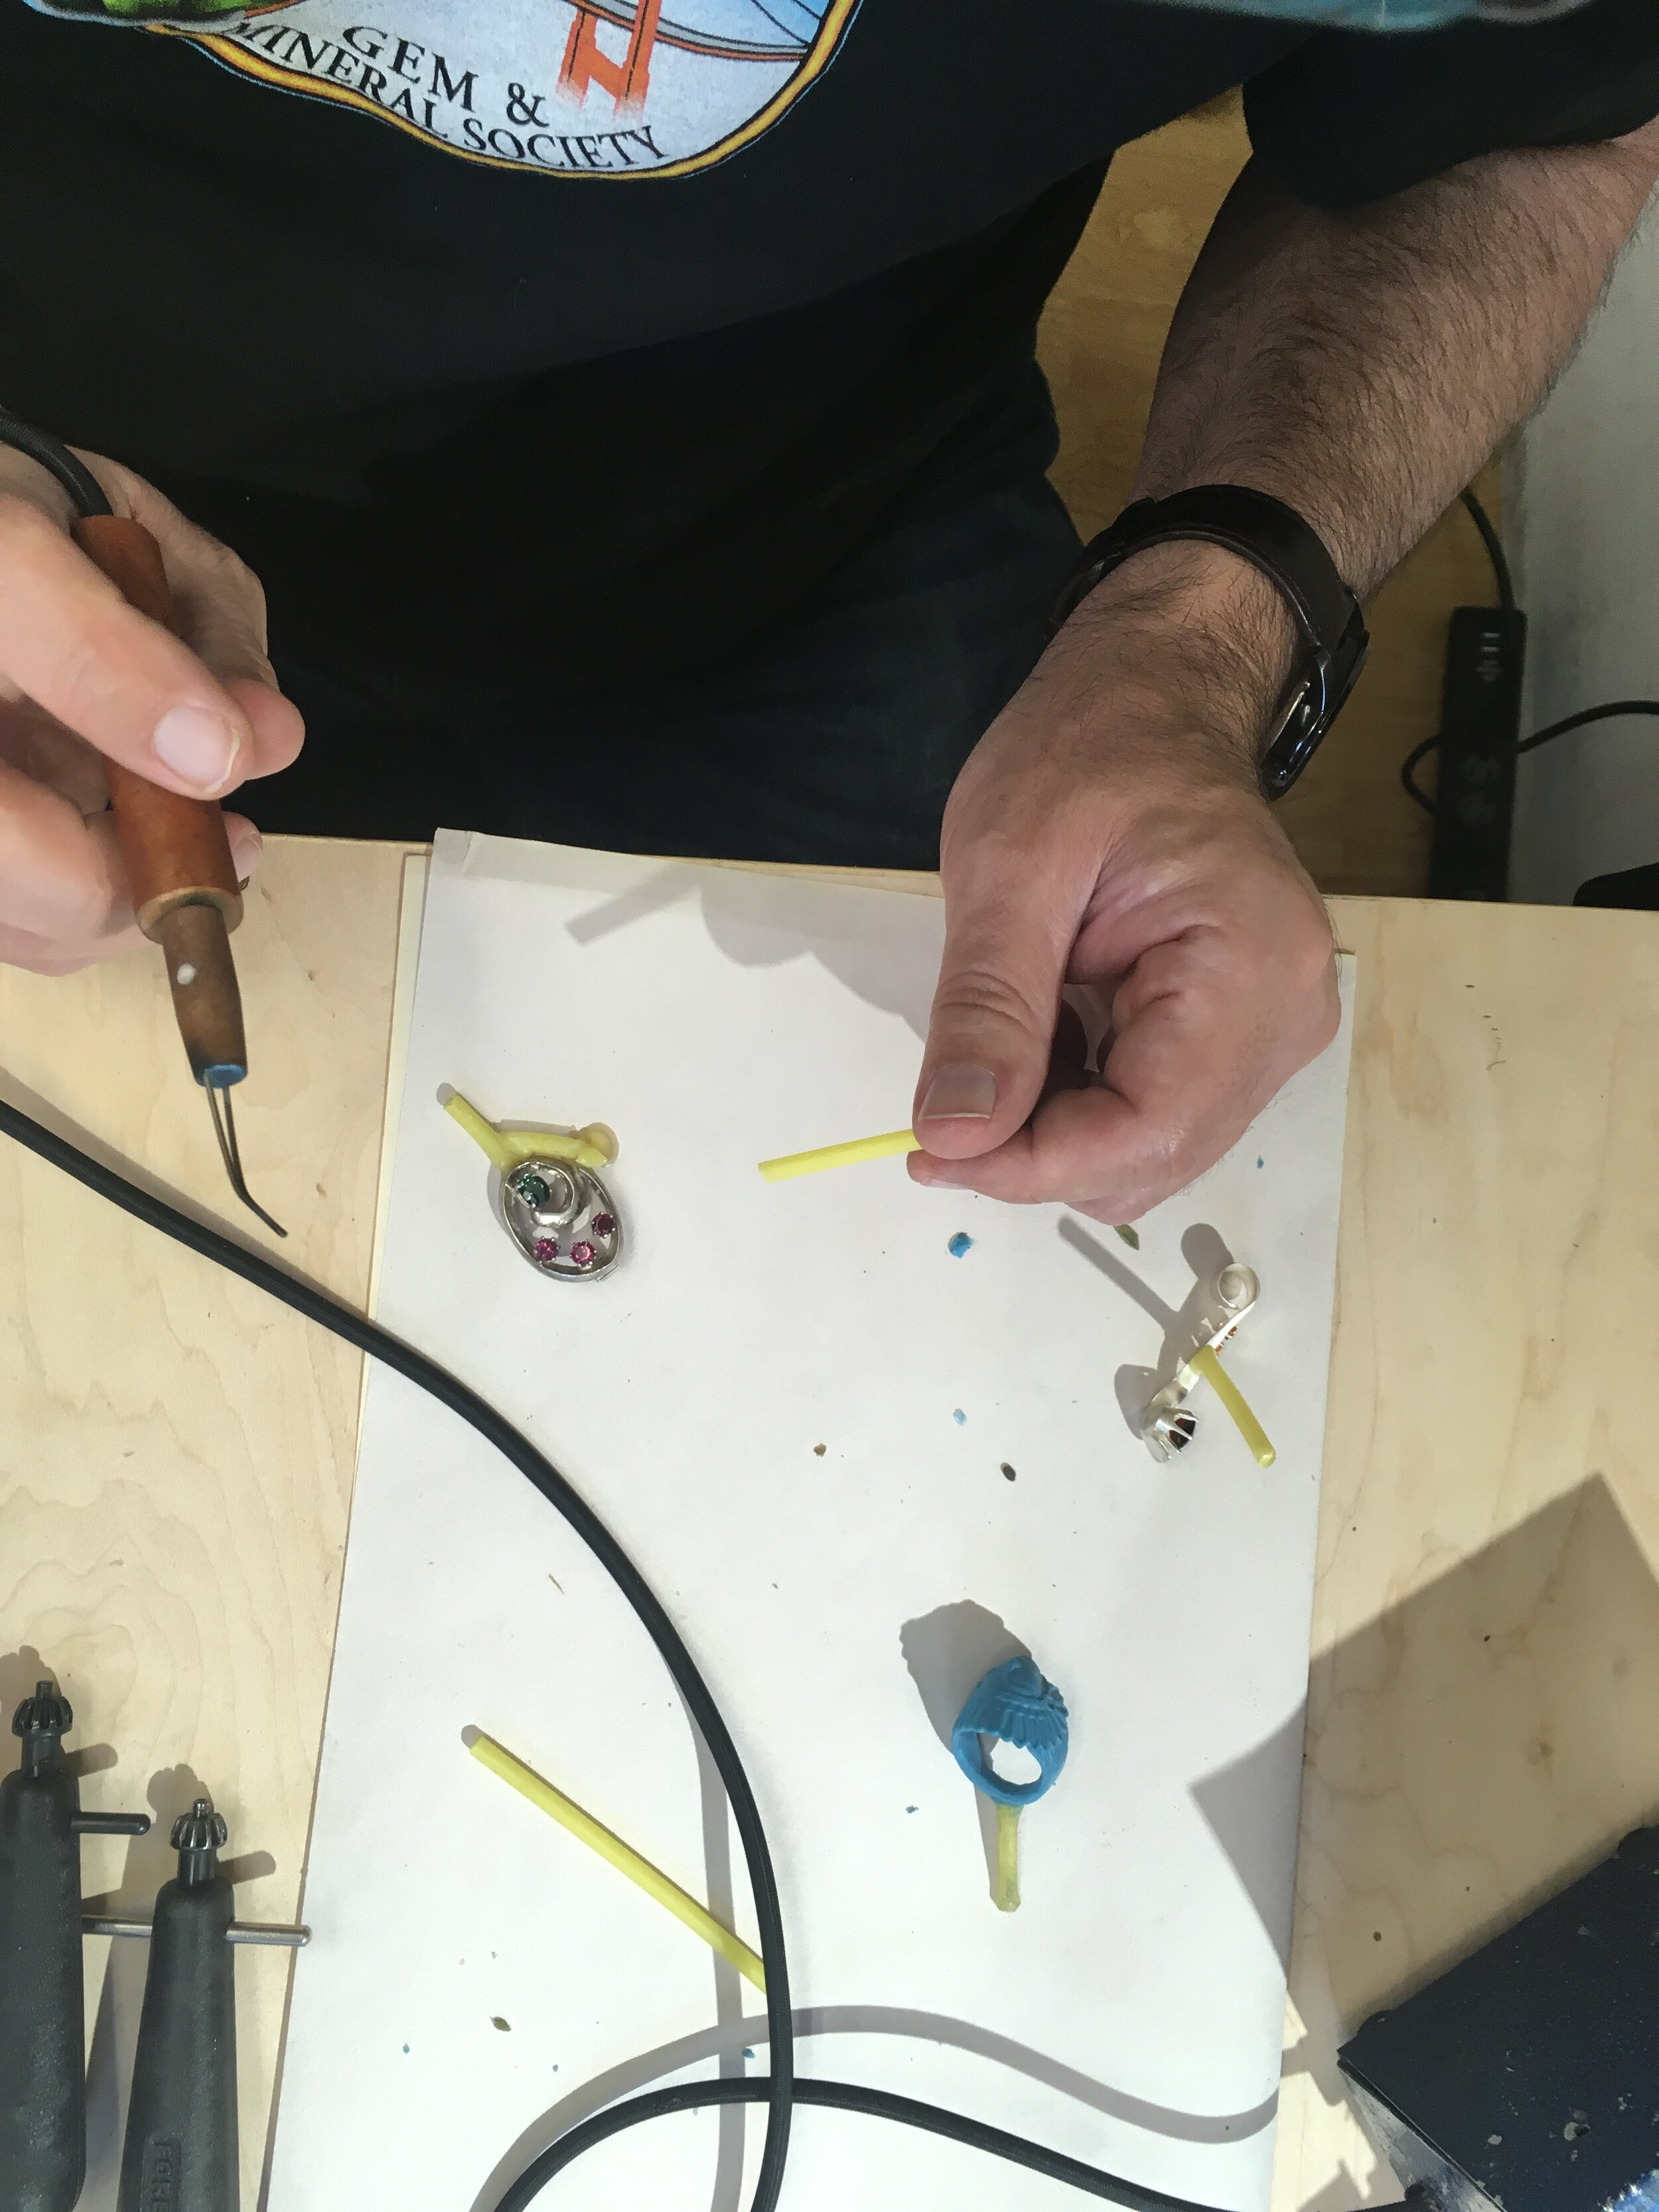 David sprues his silver jewelry pieces to make molds of them